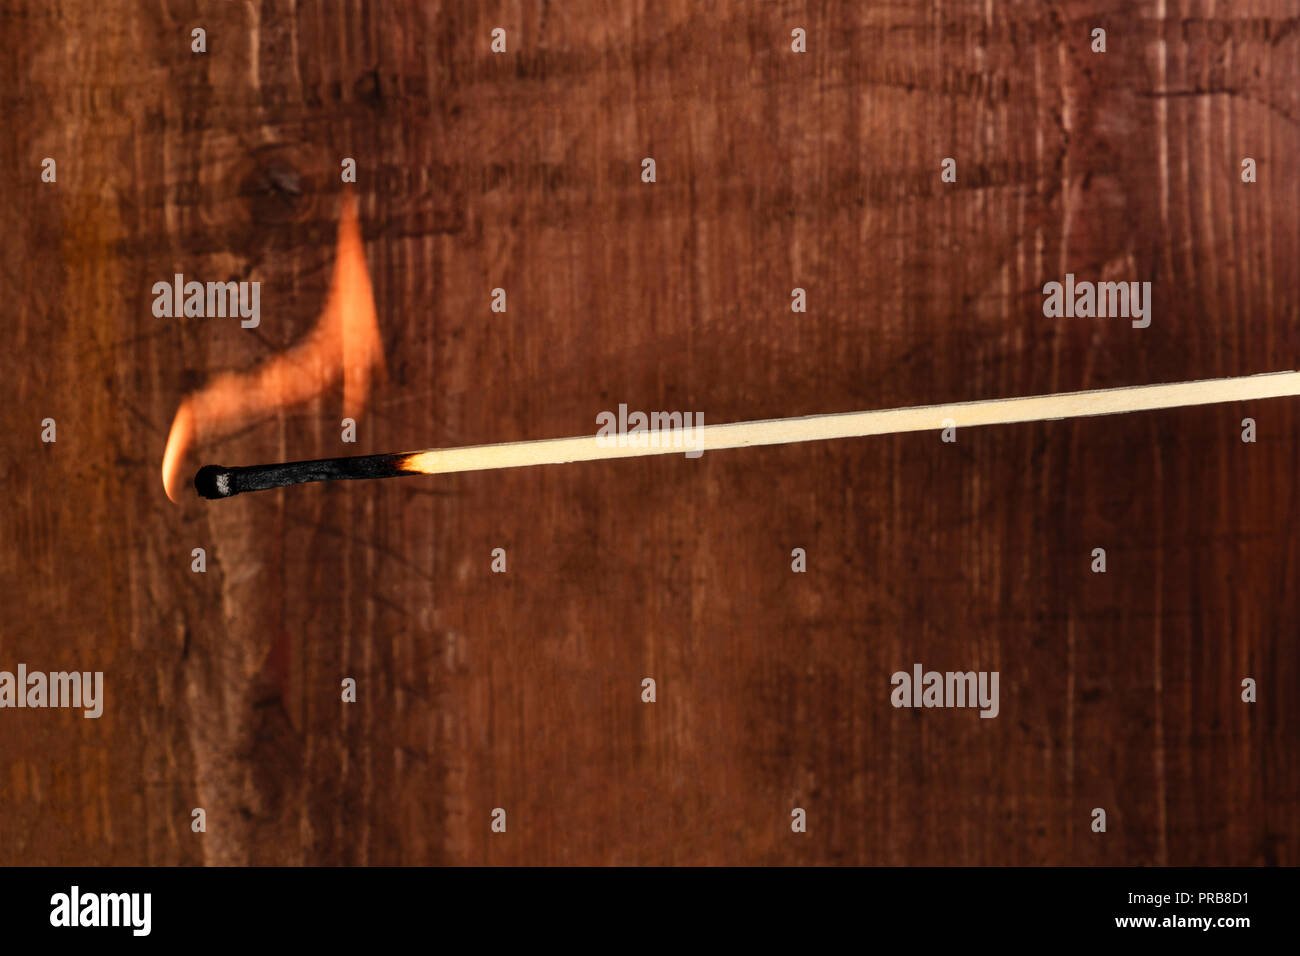 A side view of a burning match on a dark rustic background with copy space - Stock Image